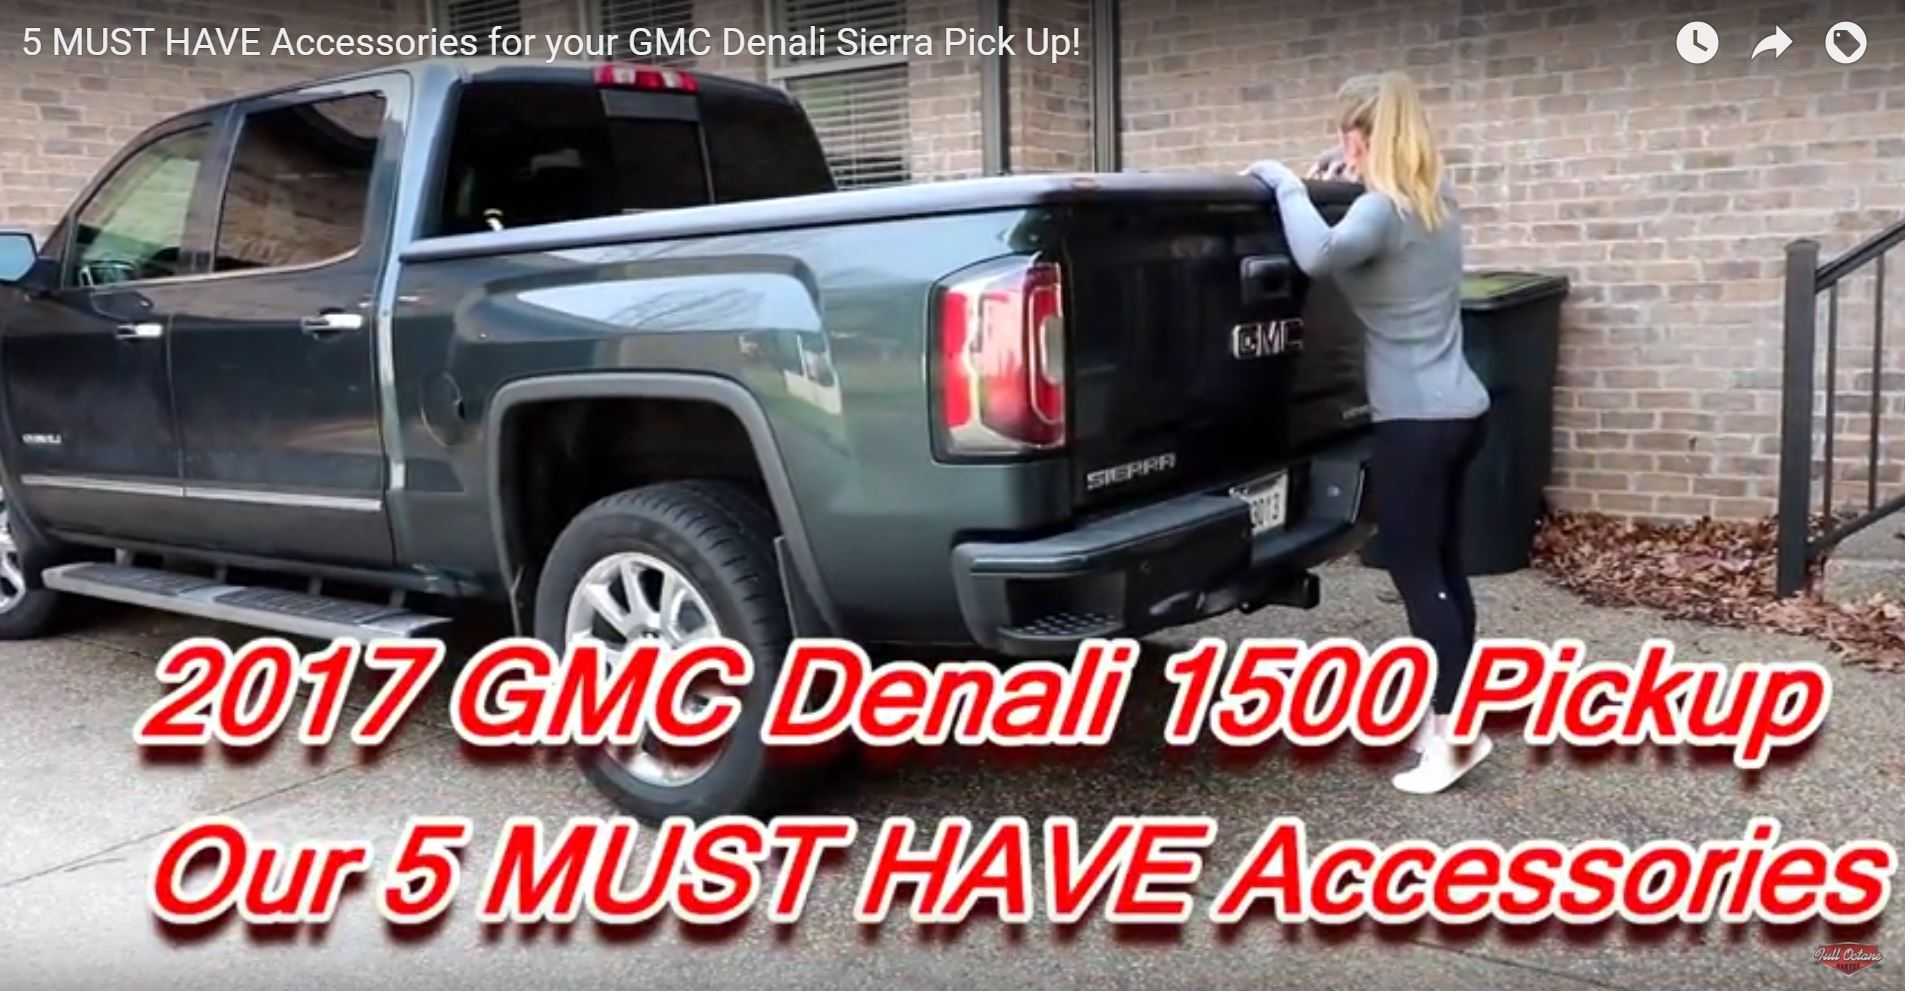 5 MUST HAVE Accessories for your GMC Denali Sierra Pick Up    Full     5 MUST HAVE Accessories for your GMC Denali Sierra Pick Up